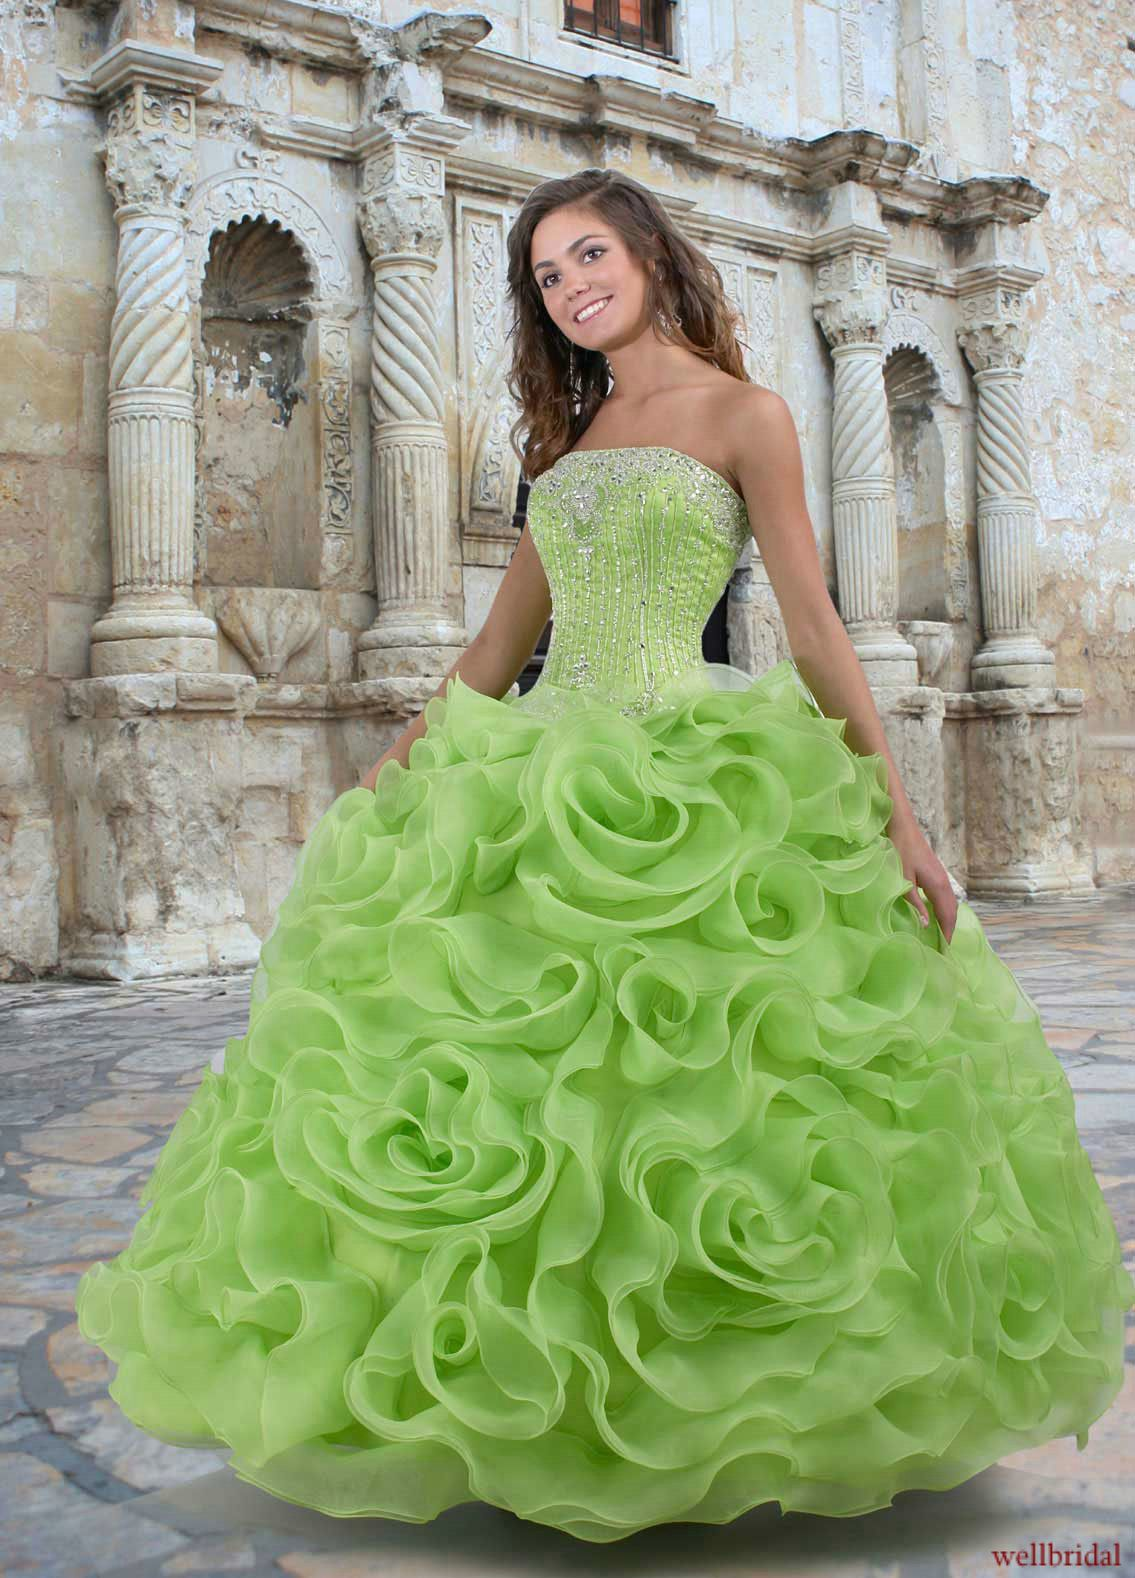 Wedding Green Wedding Dresses green wedding dress jeweled top with full skirt love it it